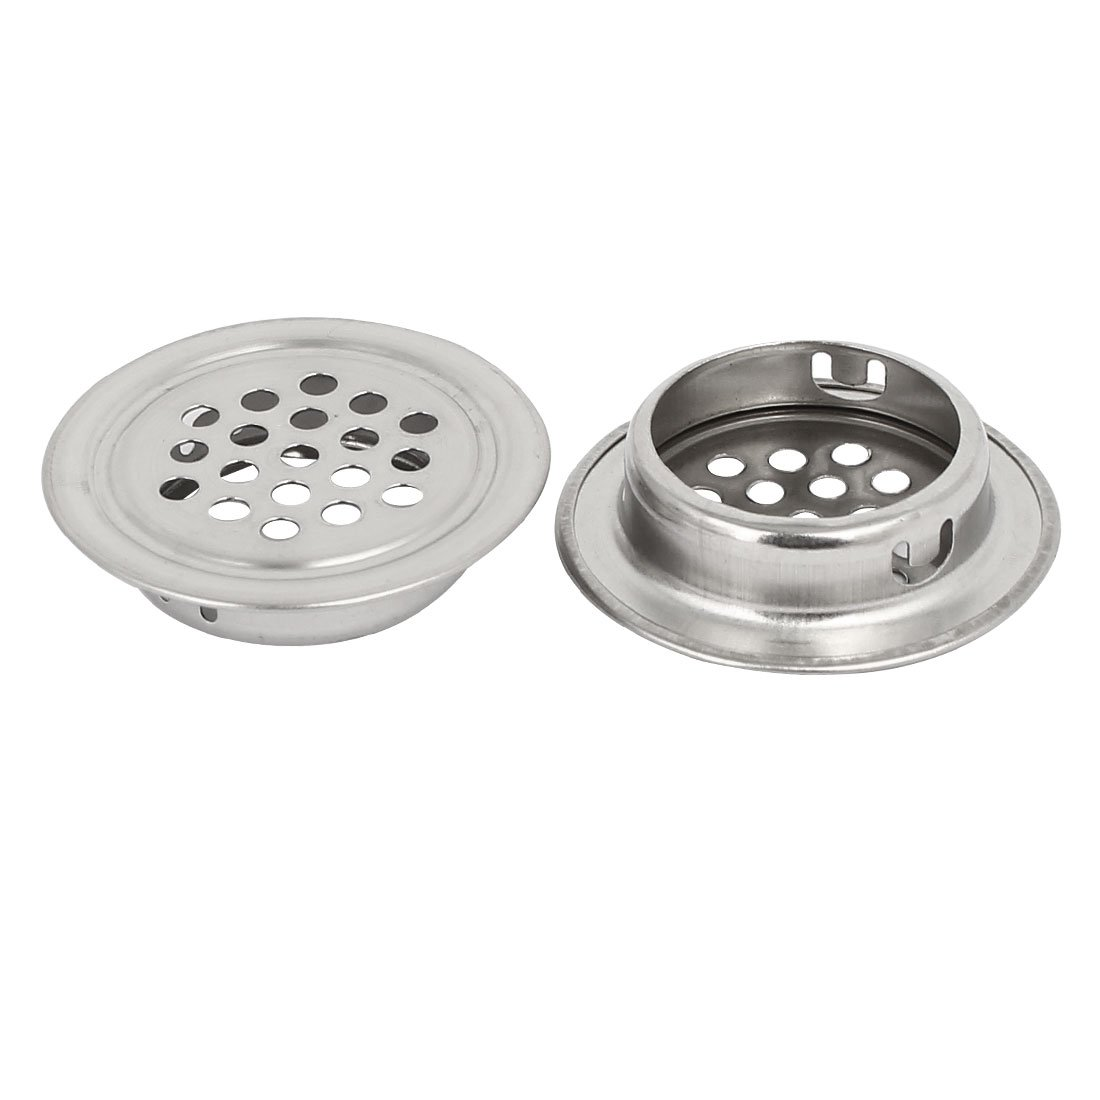 uxcell 28.5mm Bottom Dia Stainless Steel Round Shaped Mesh Hole Air Vent Louver 25pcs by uxcell (Image #2)